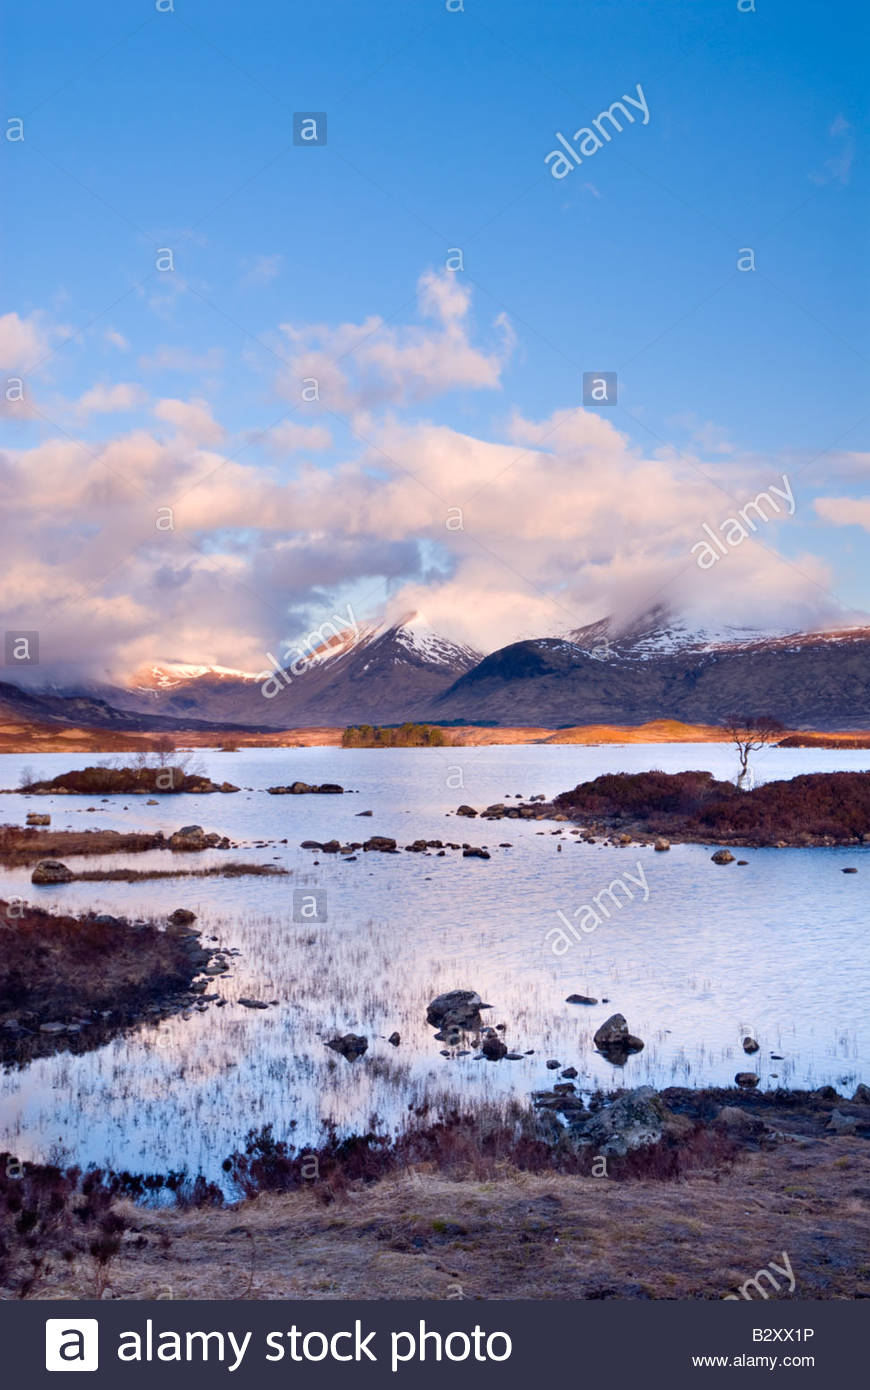 Clearing storm over Lochan na h'Achlaise and the Black Mount, Rannoch Moor, Scottish Highlands, UK Stock Photo